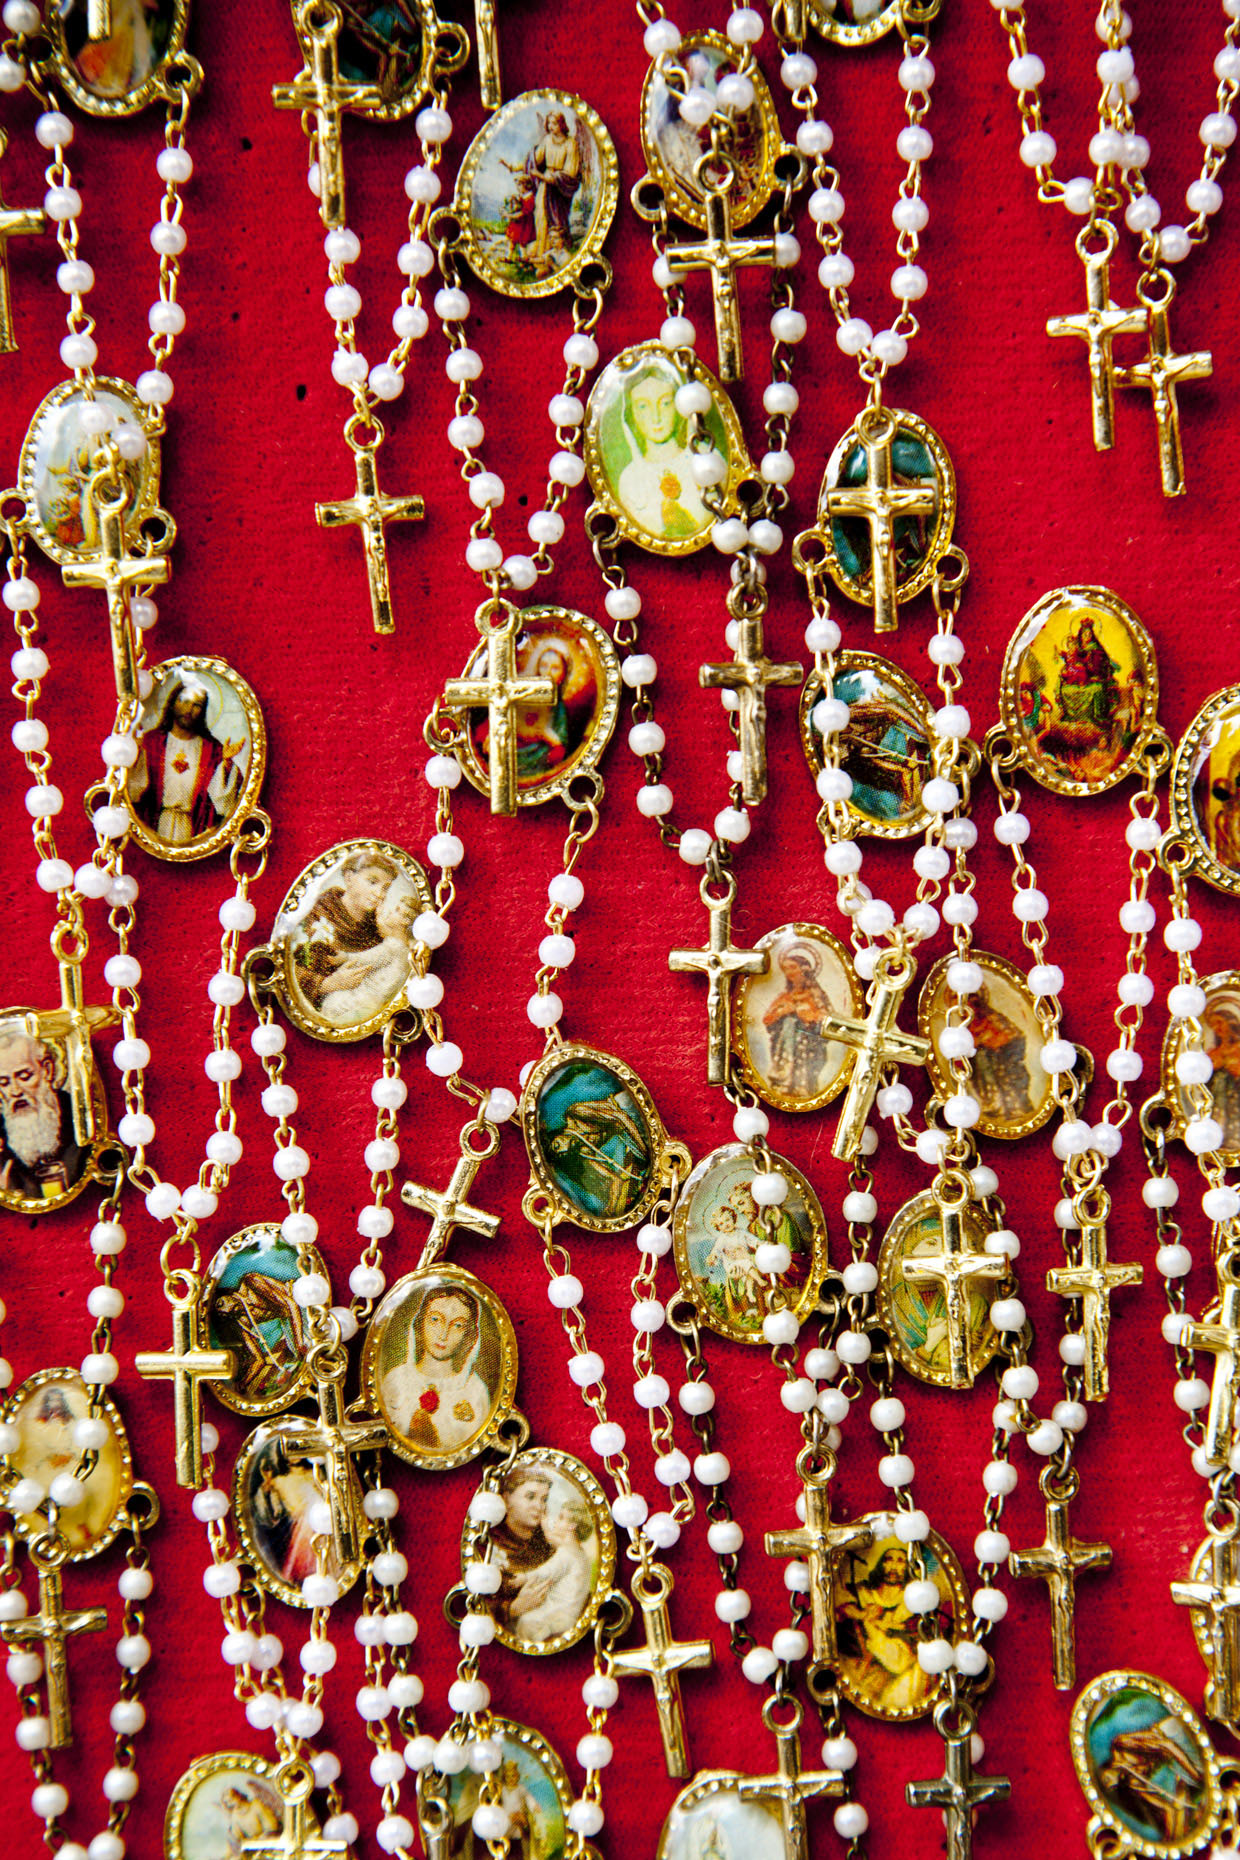 Tangle of rosaries on red cloth